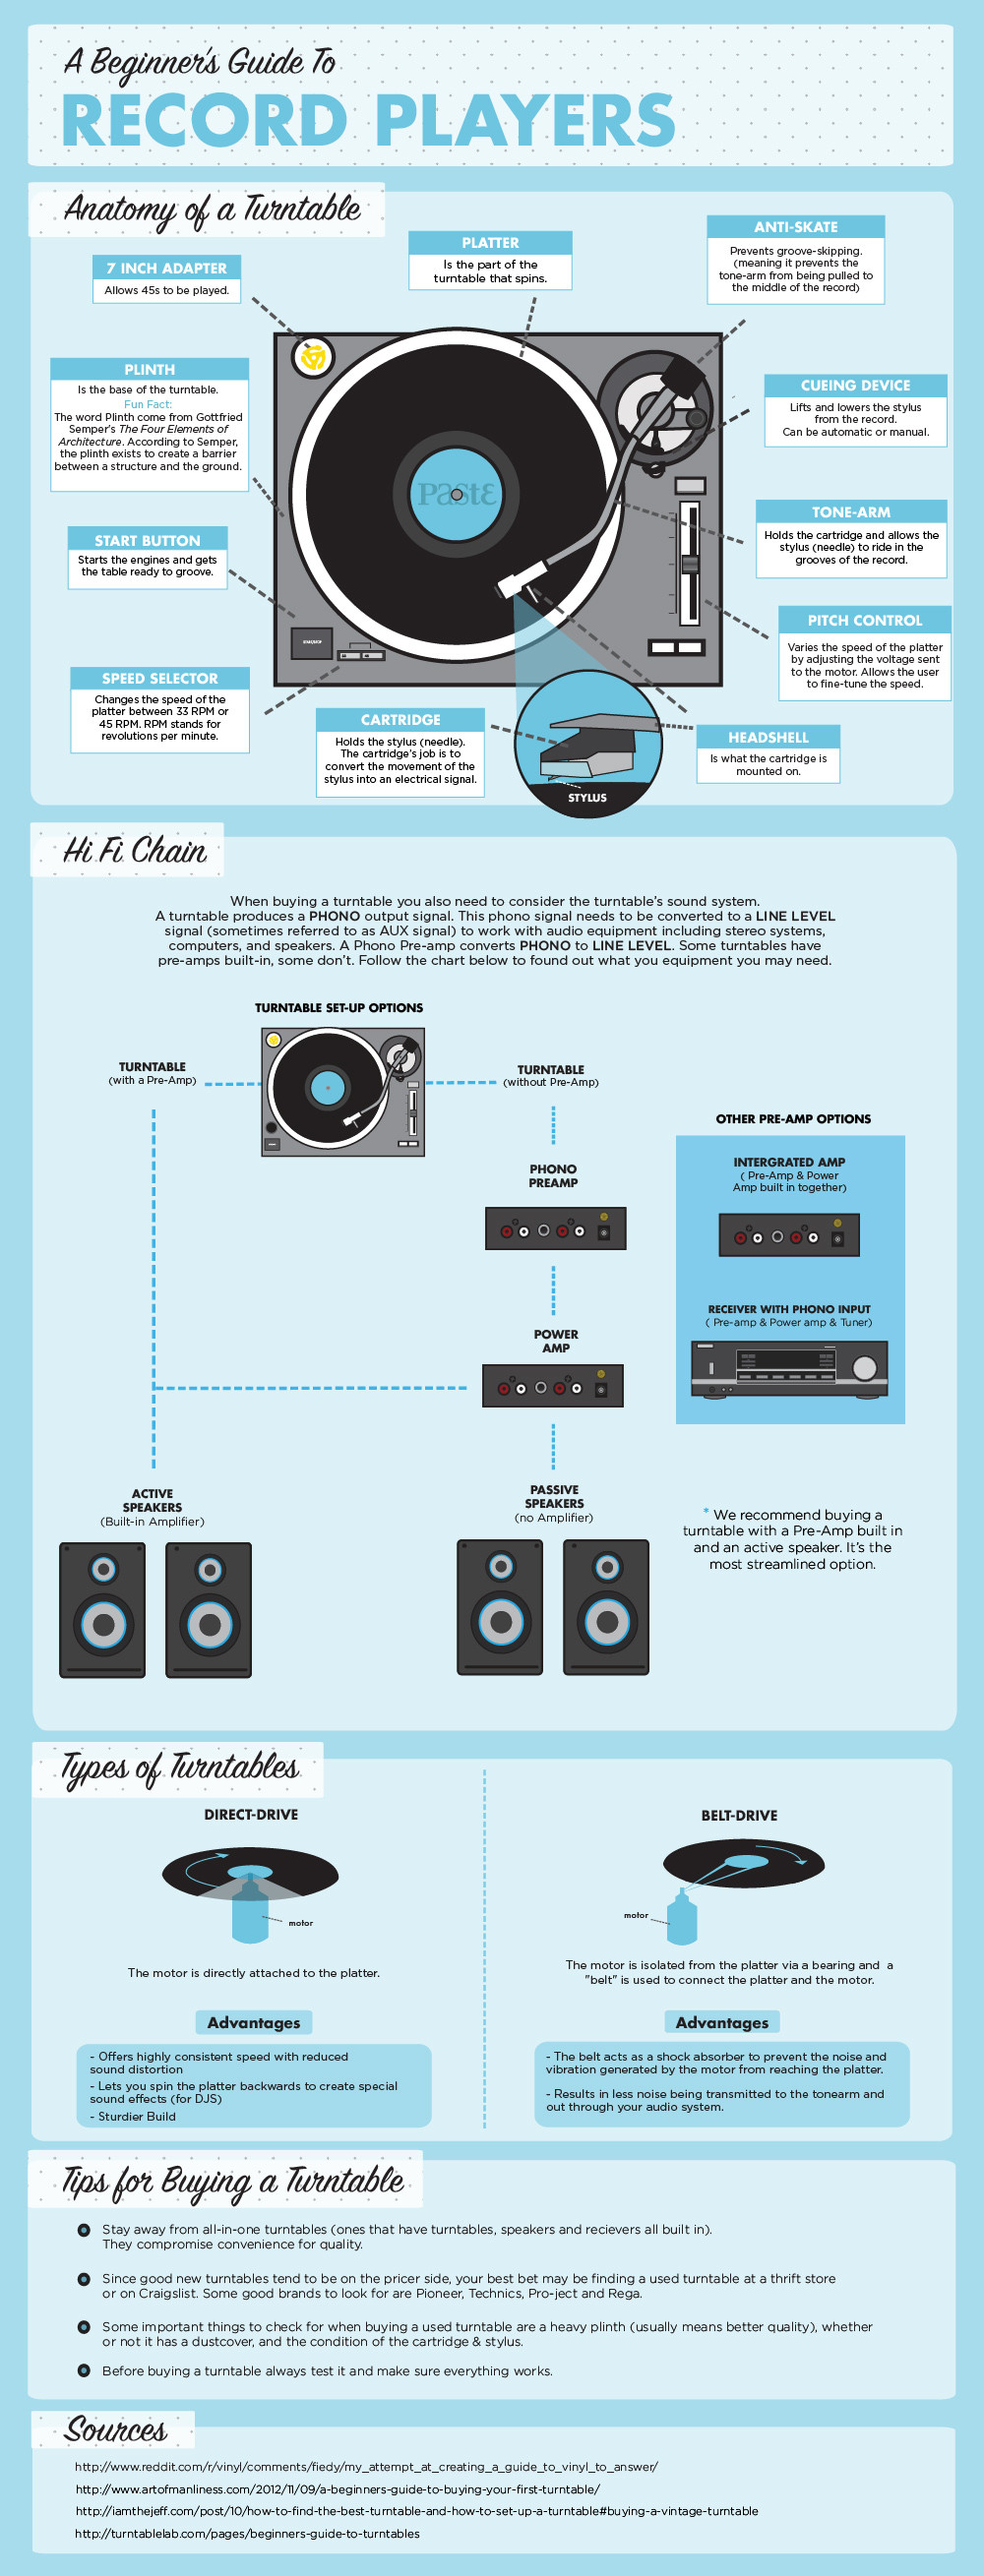 the-ultimate-guide-to-djing-4